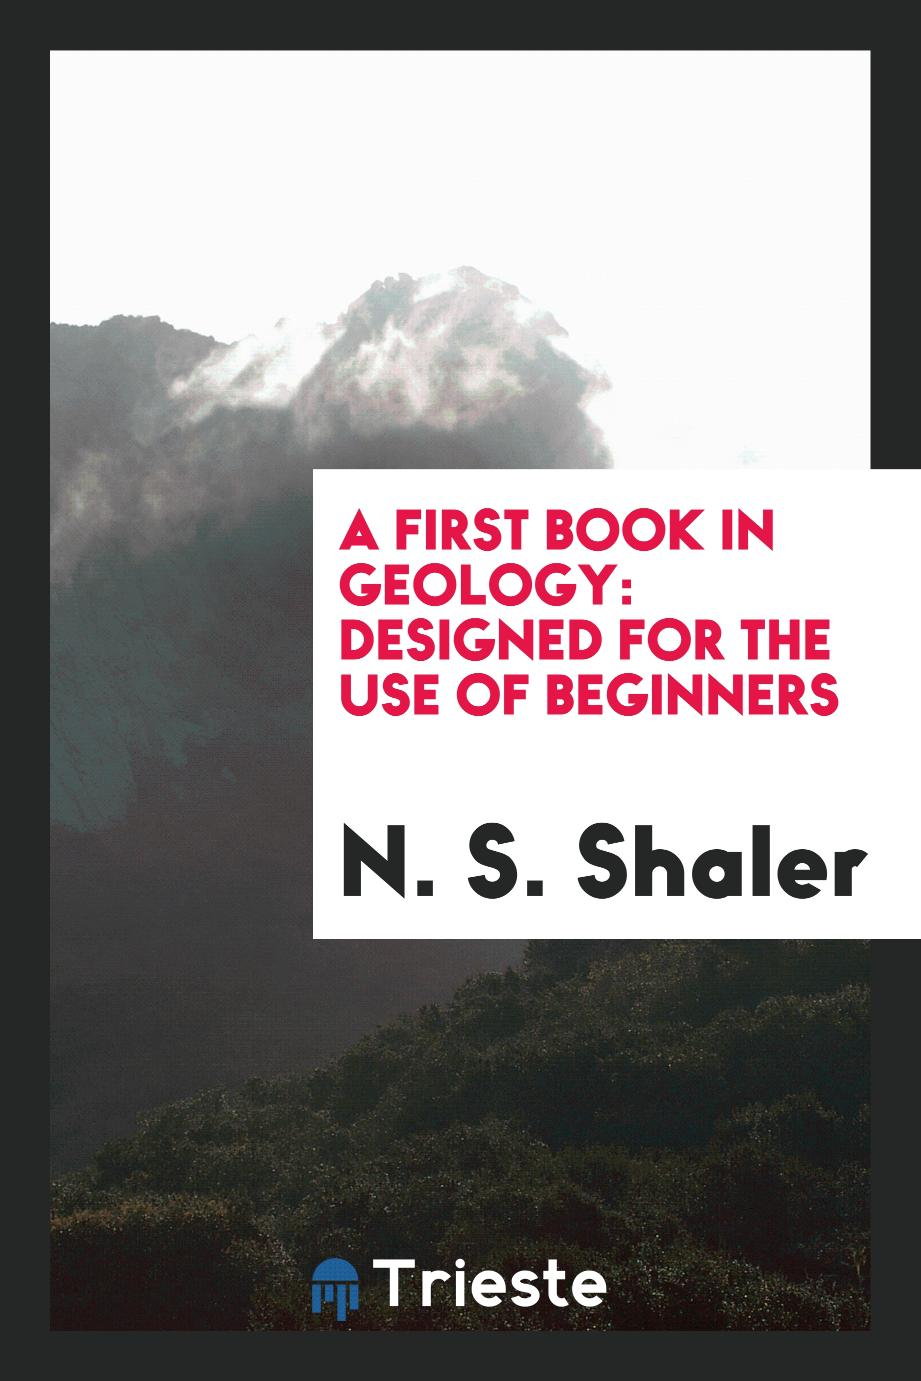 A first book in geology: designed for the use of beginners